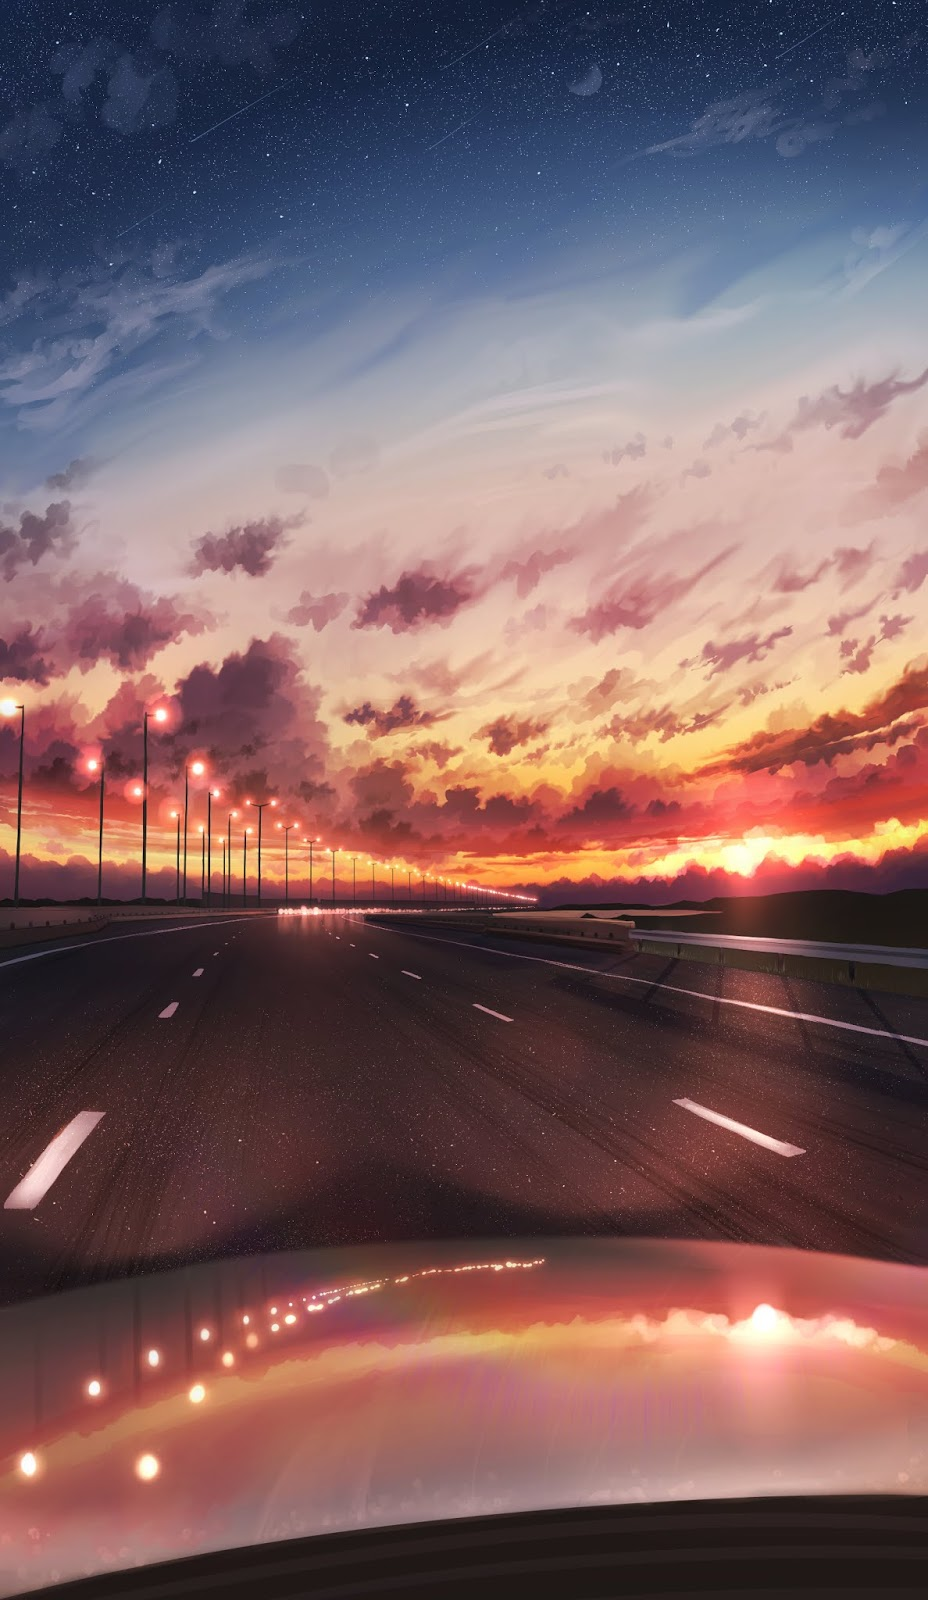 High way in the sunset by pasoputi